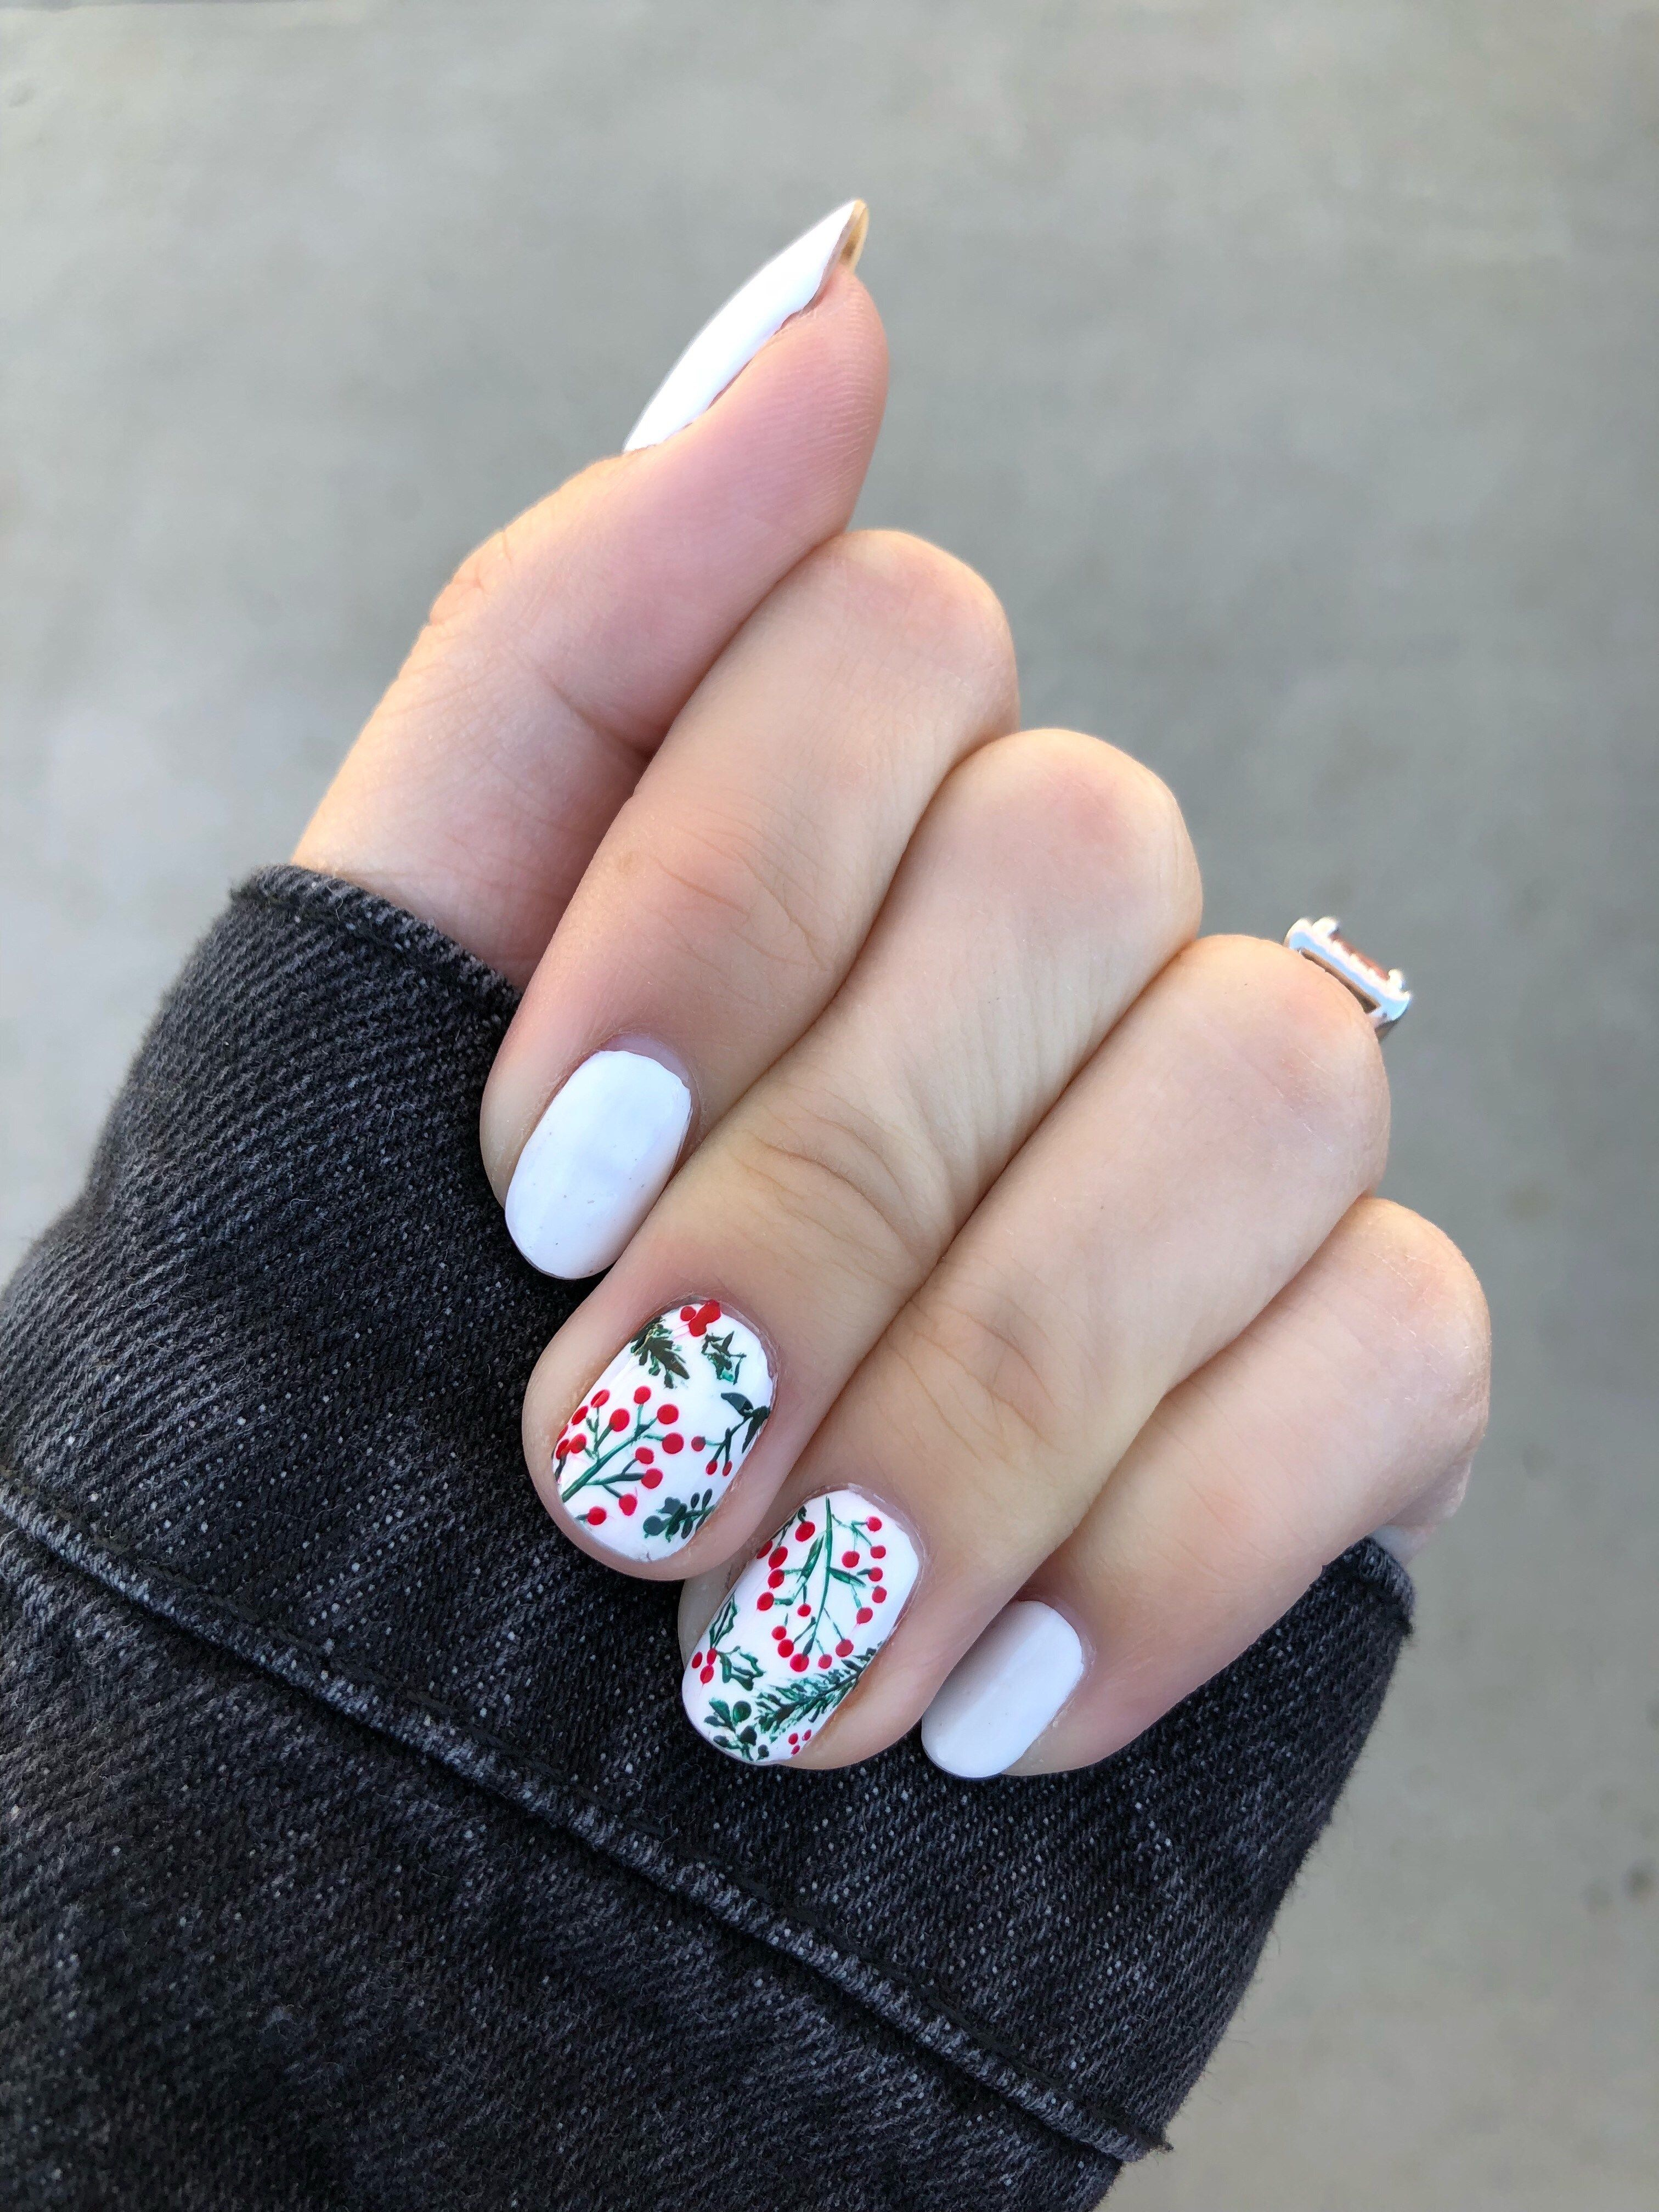 Holly Berry Nail Art | Best of Bloggers | Pinterest ...